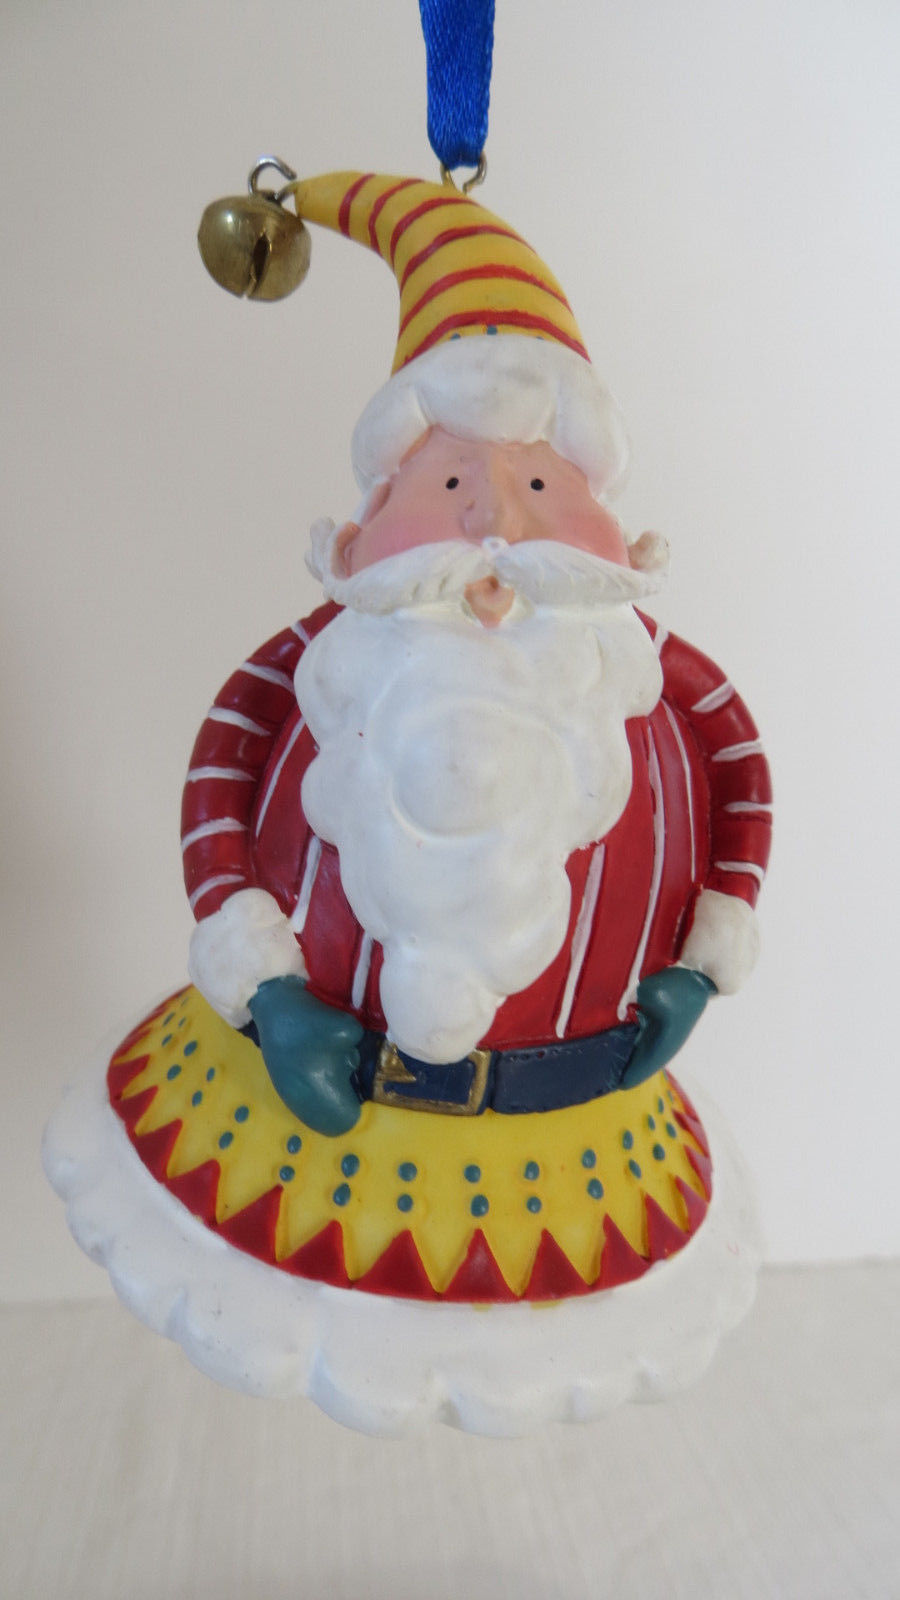 Christmas Avon 1998 Santa Tune Bell Ornament